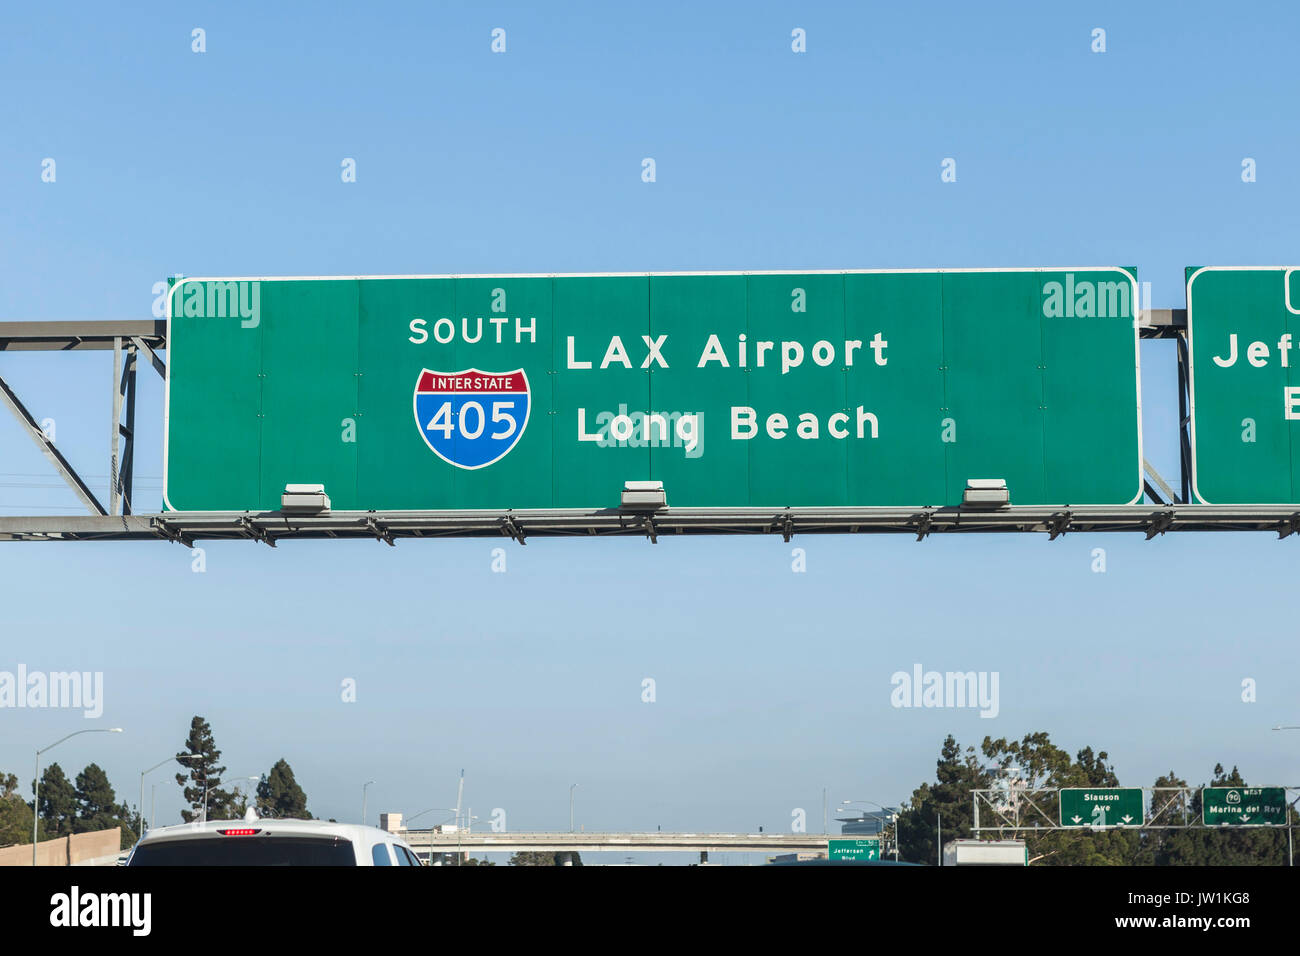 LAX Airport and Long Beach overhead freeway sign on Interstate 405 in Los Angeles, California. - Stock Image